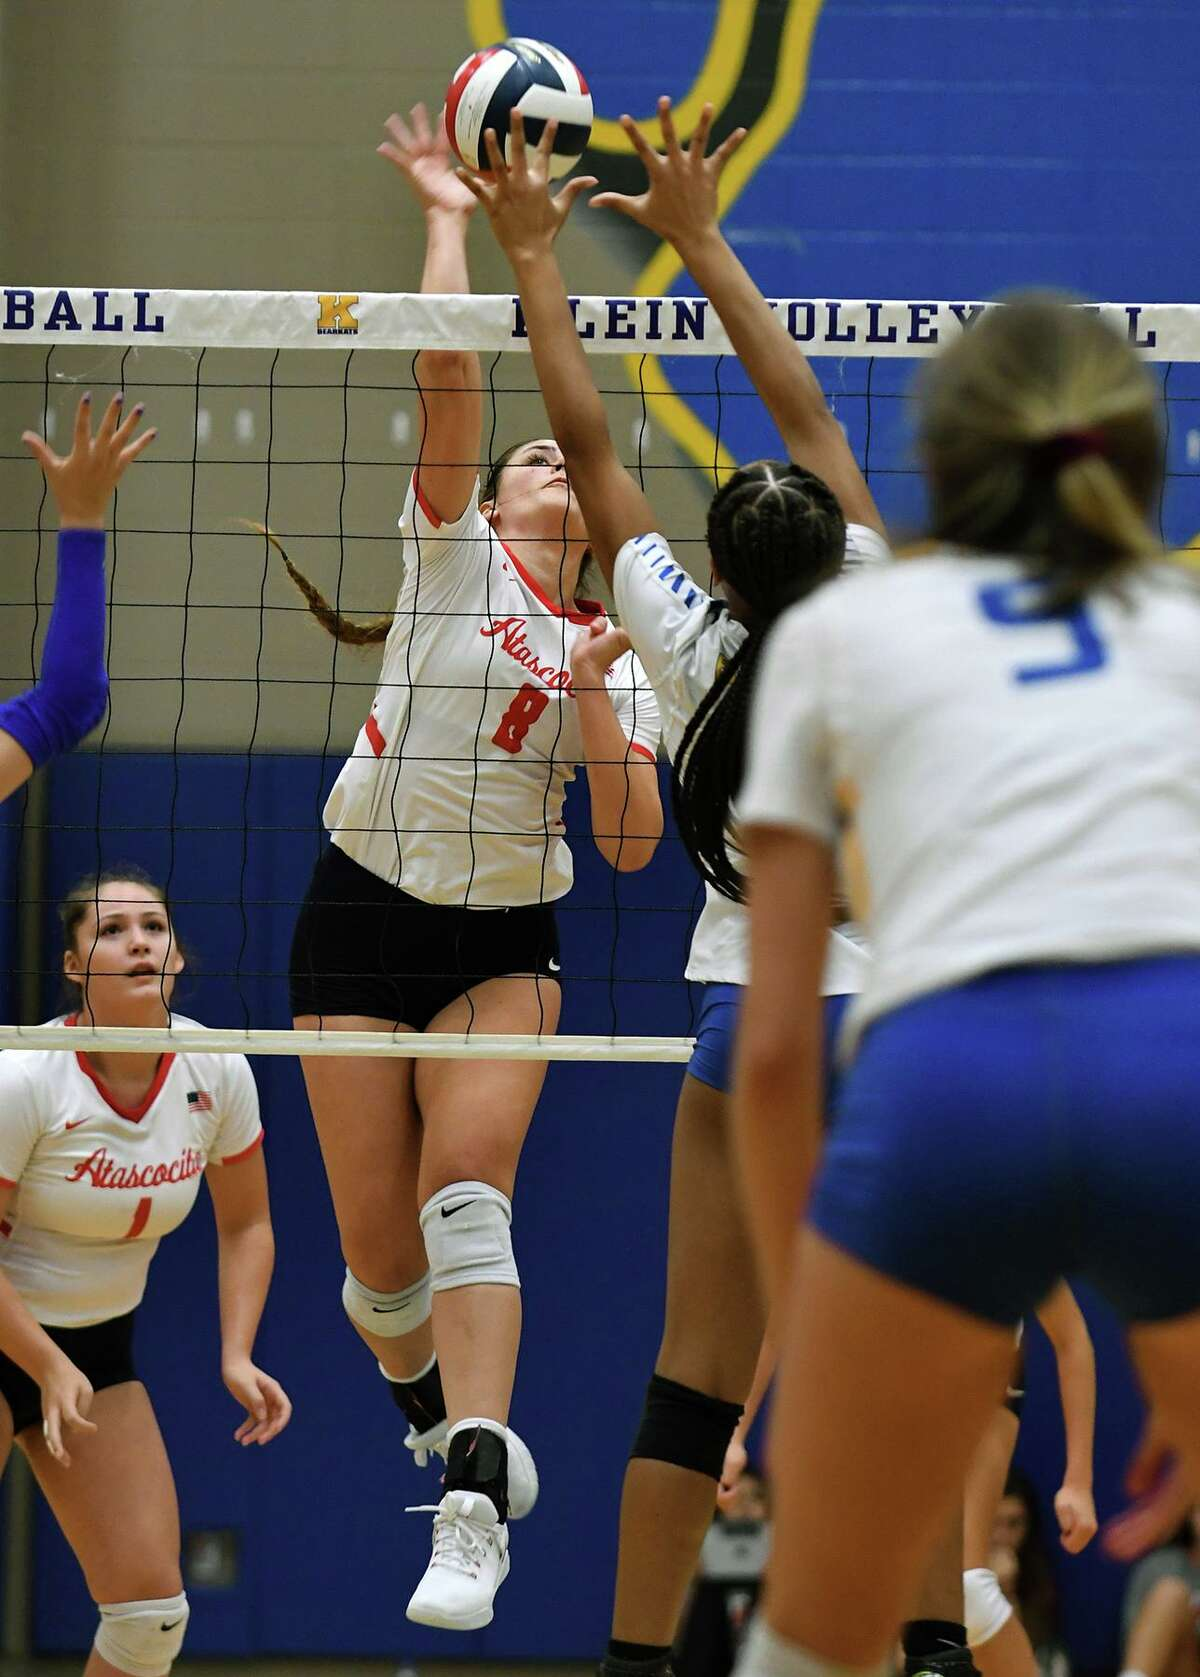 Atascocita junior middle blocker Kenzie Coker (8) battles at the net against a Klein defender during their non-district match at Klein High School on August 20, 2019.